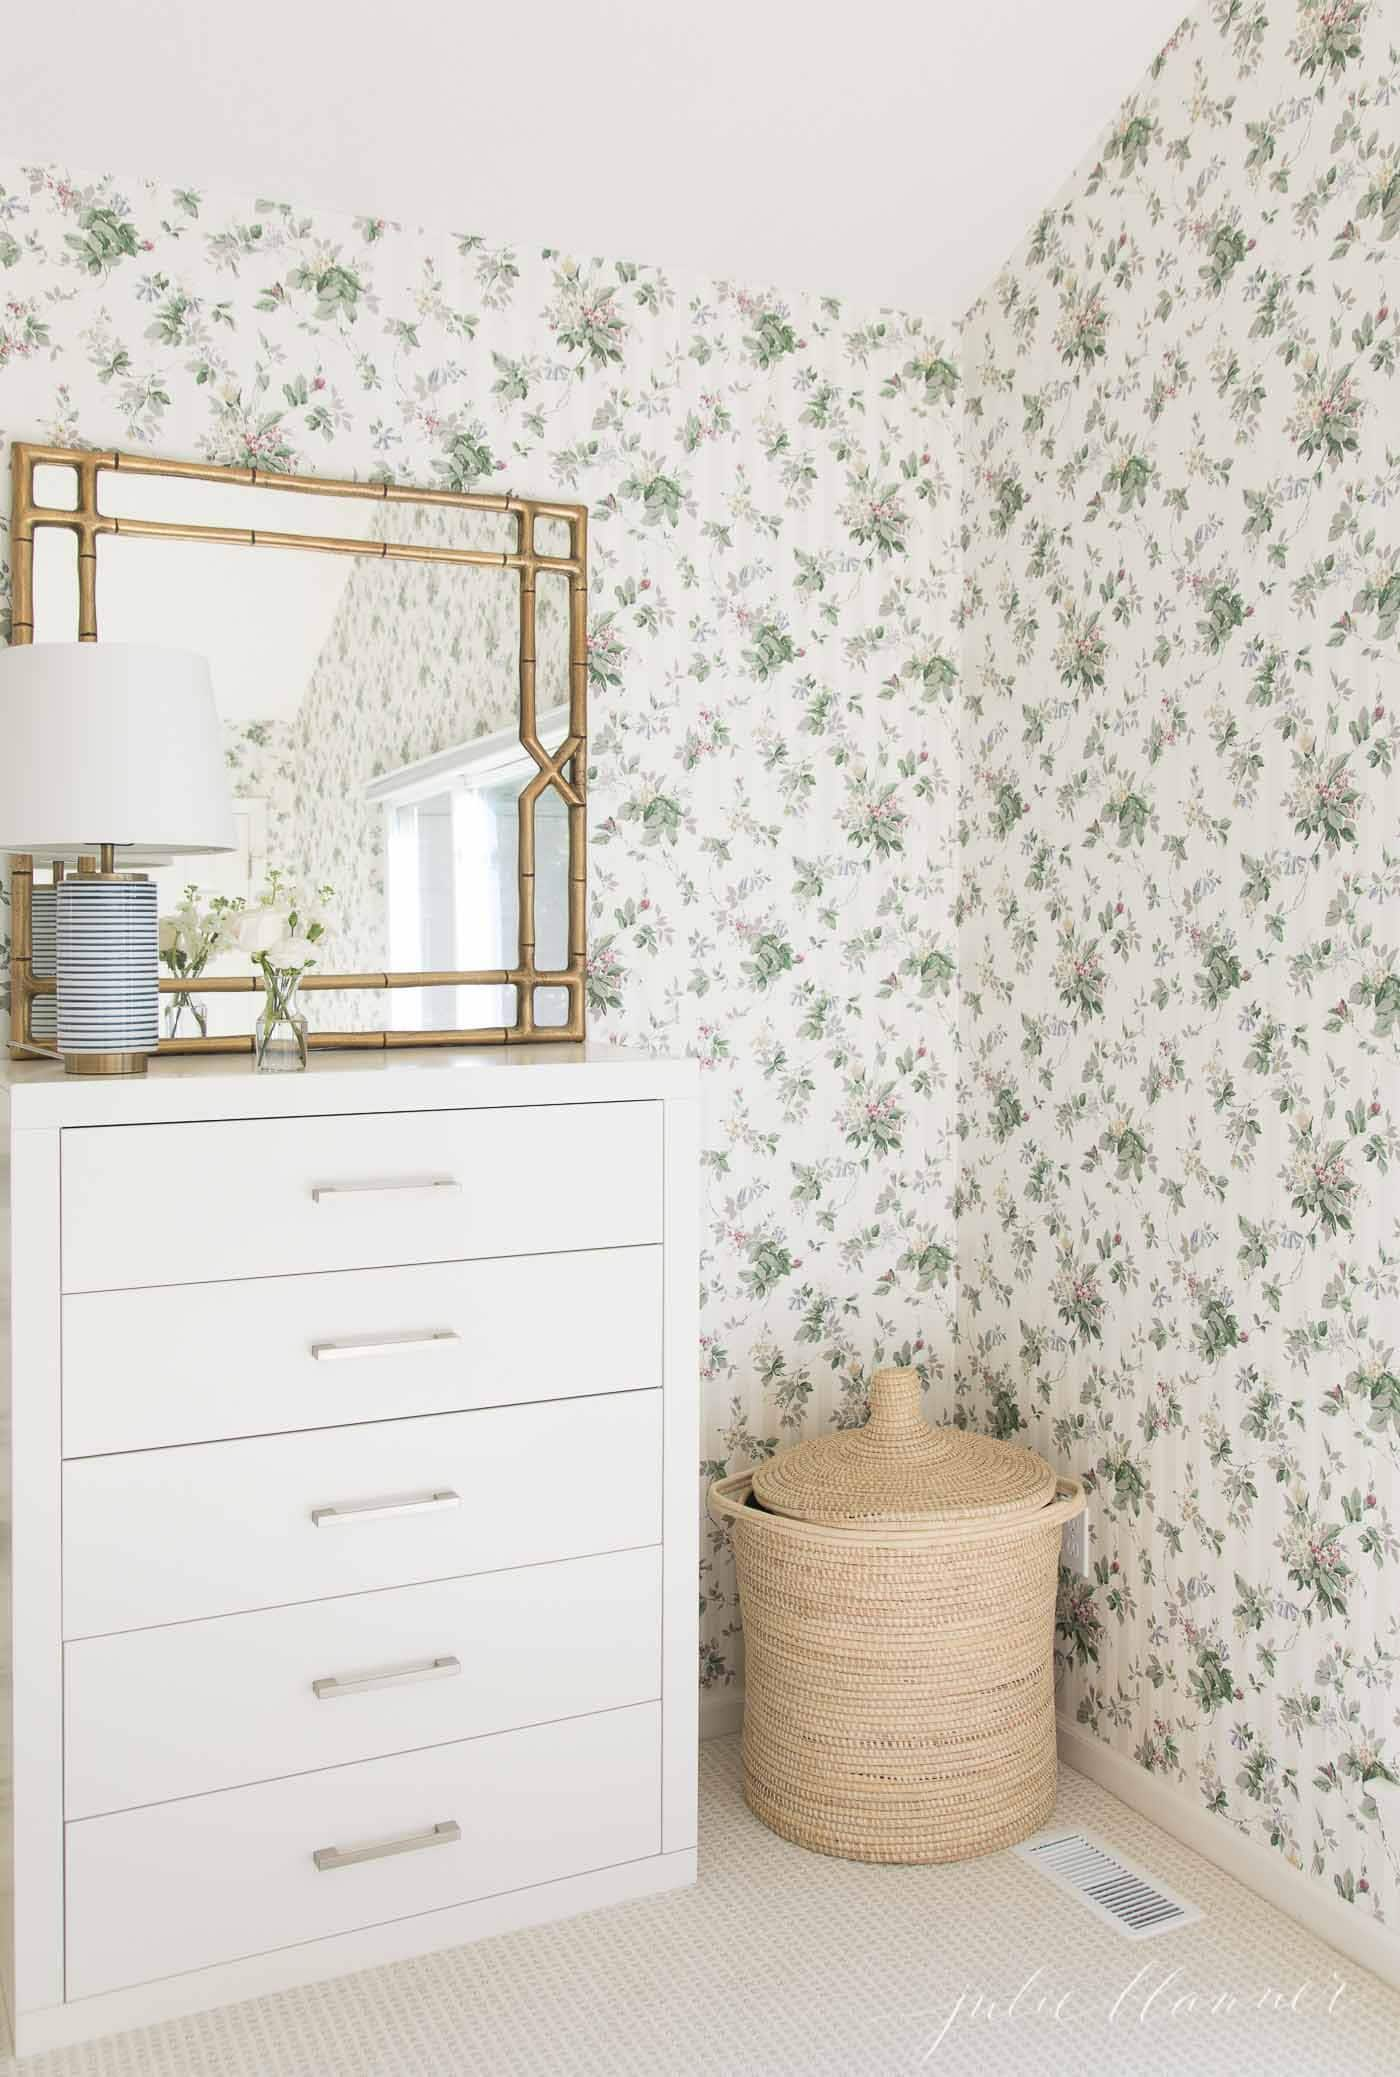 patterned carpet and floral wallpaper in a bedroom